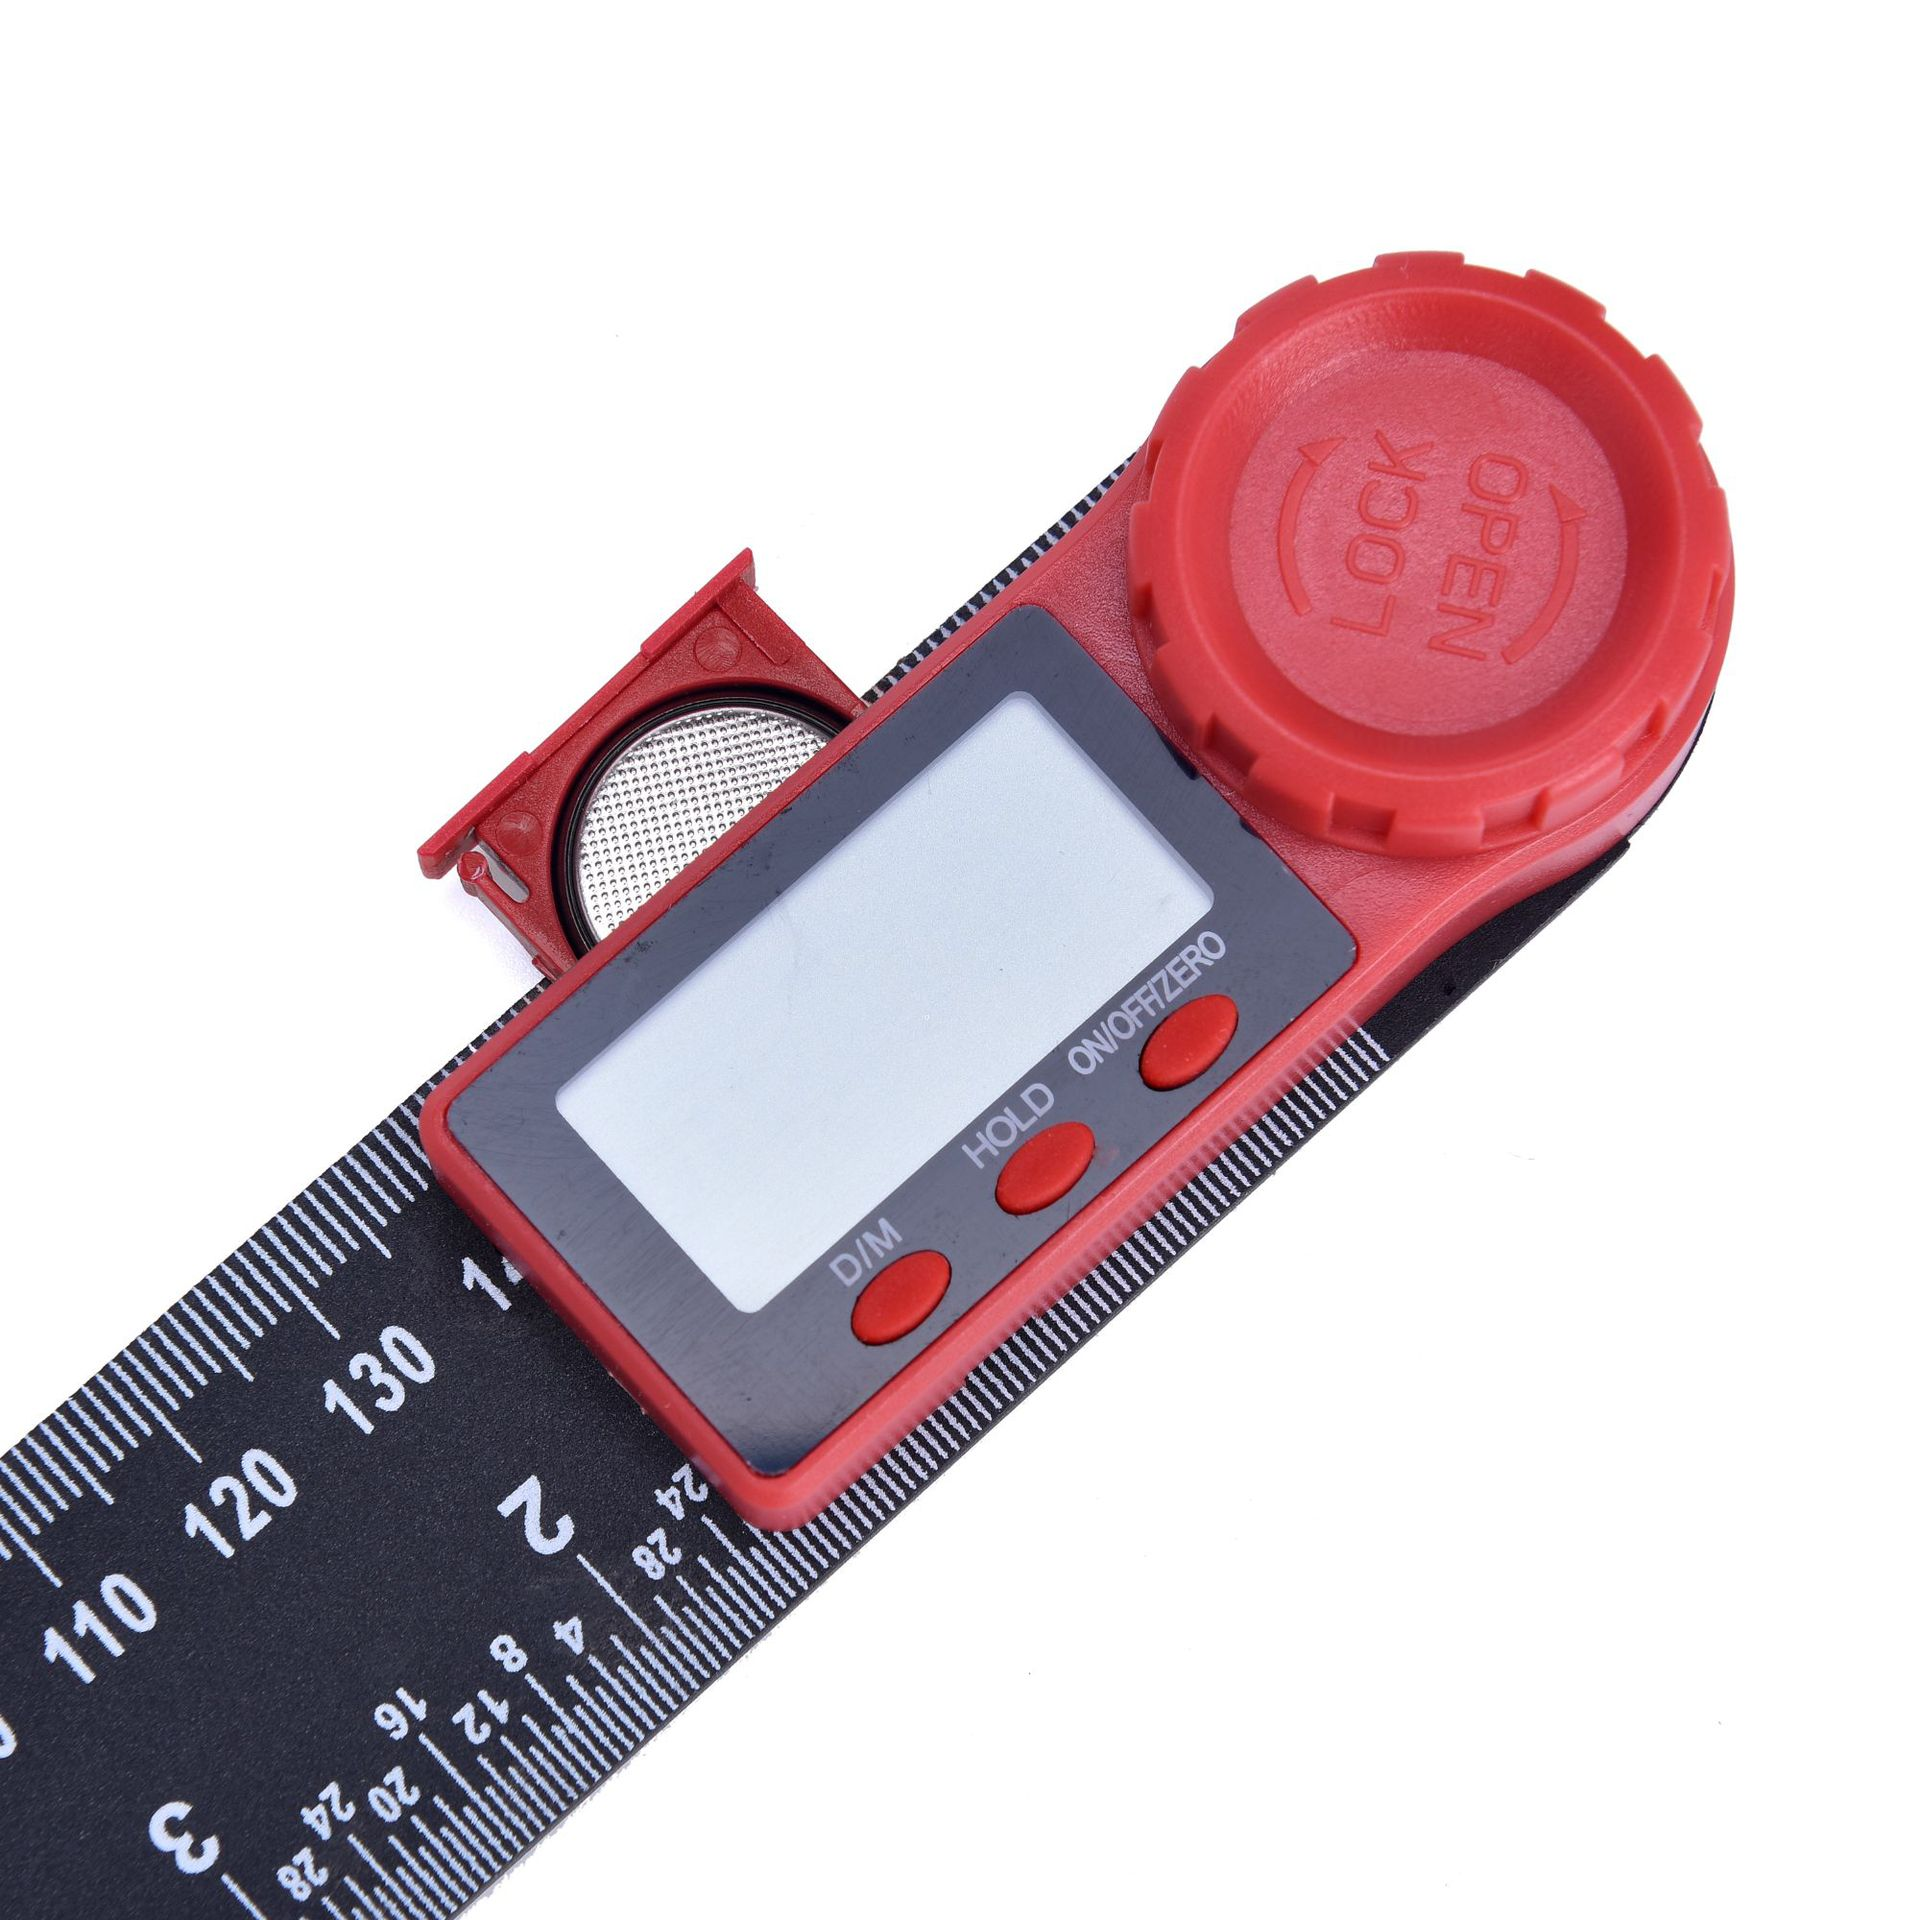 Image 2 - 0 200mm 8'' Digital Meter Angle Inclinometer Angle Digital Ruler Electron Goniometer Protractor Angle finder Measuring Tool-in Protractors from Tools